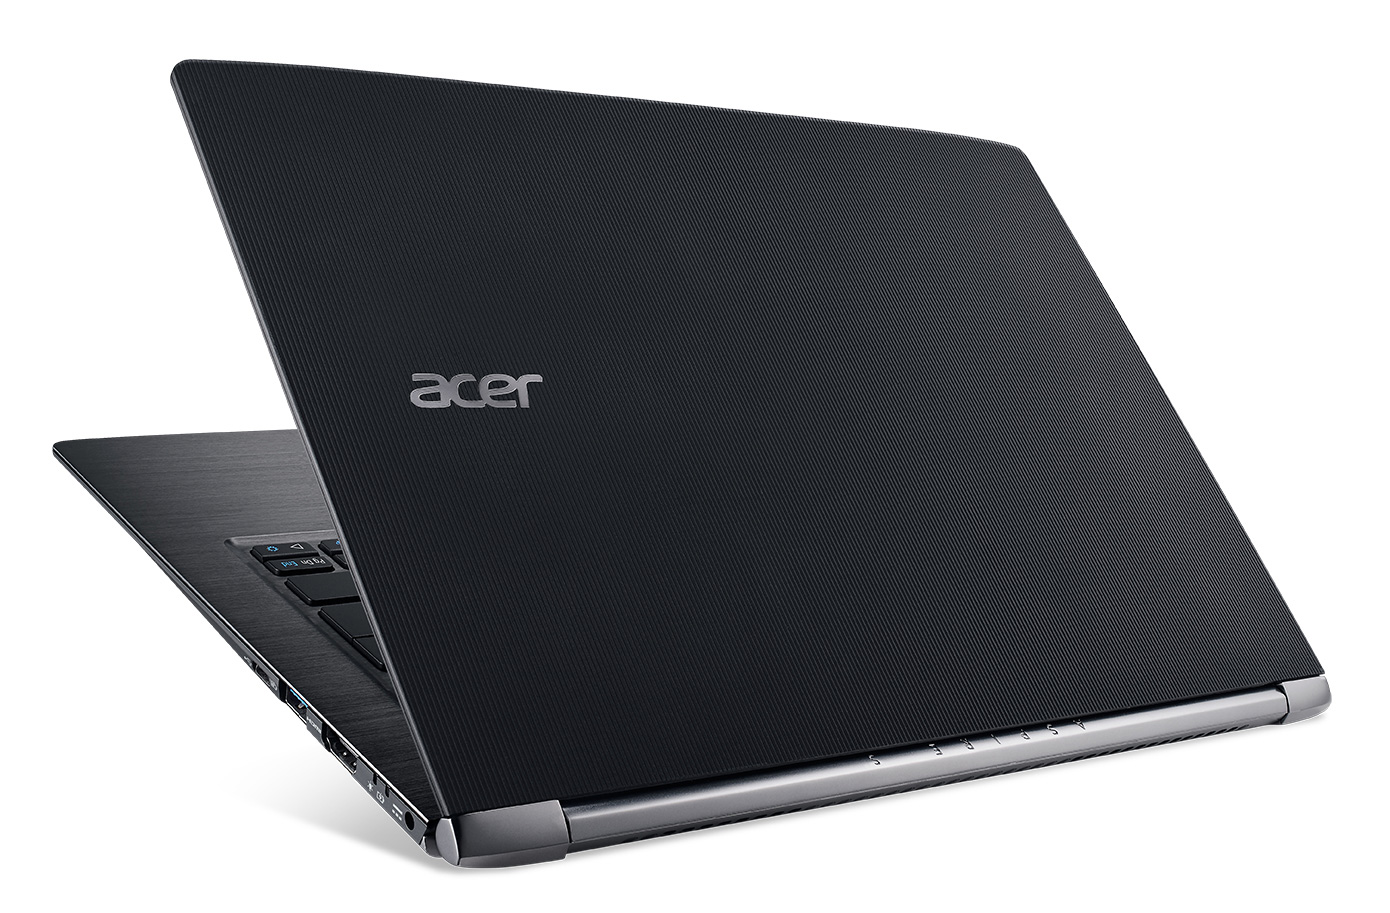 acer-aspire-s5-371-6